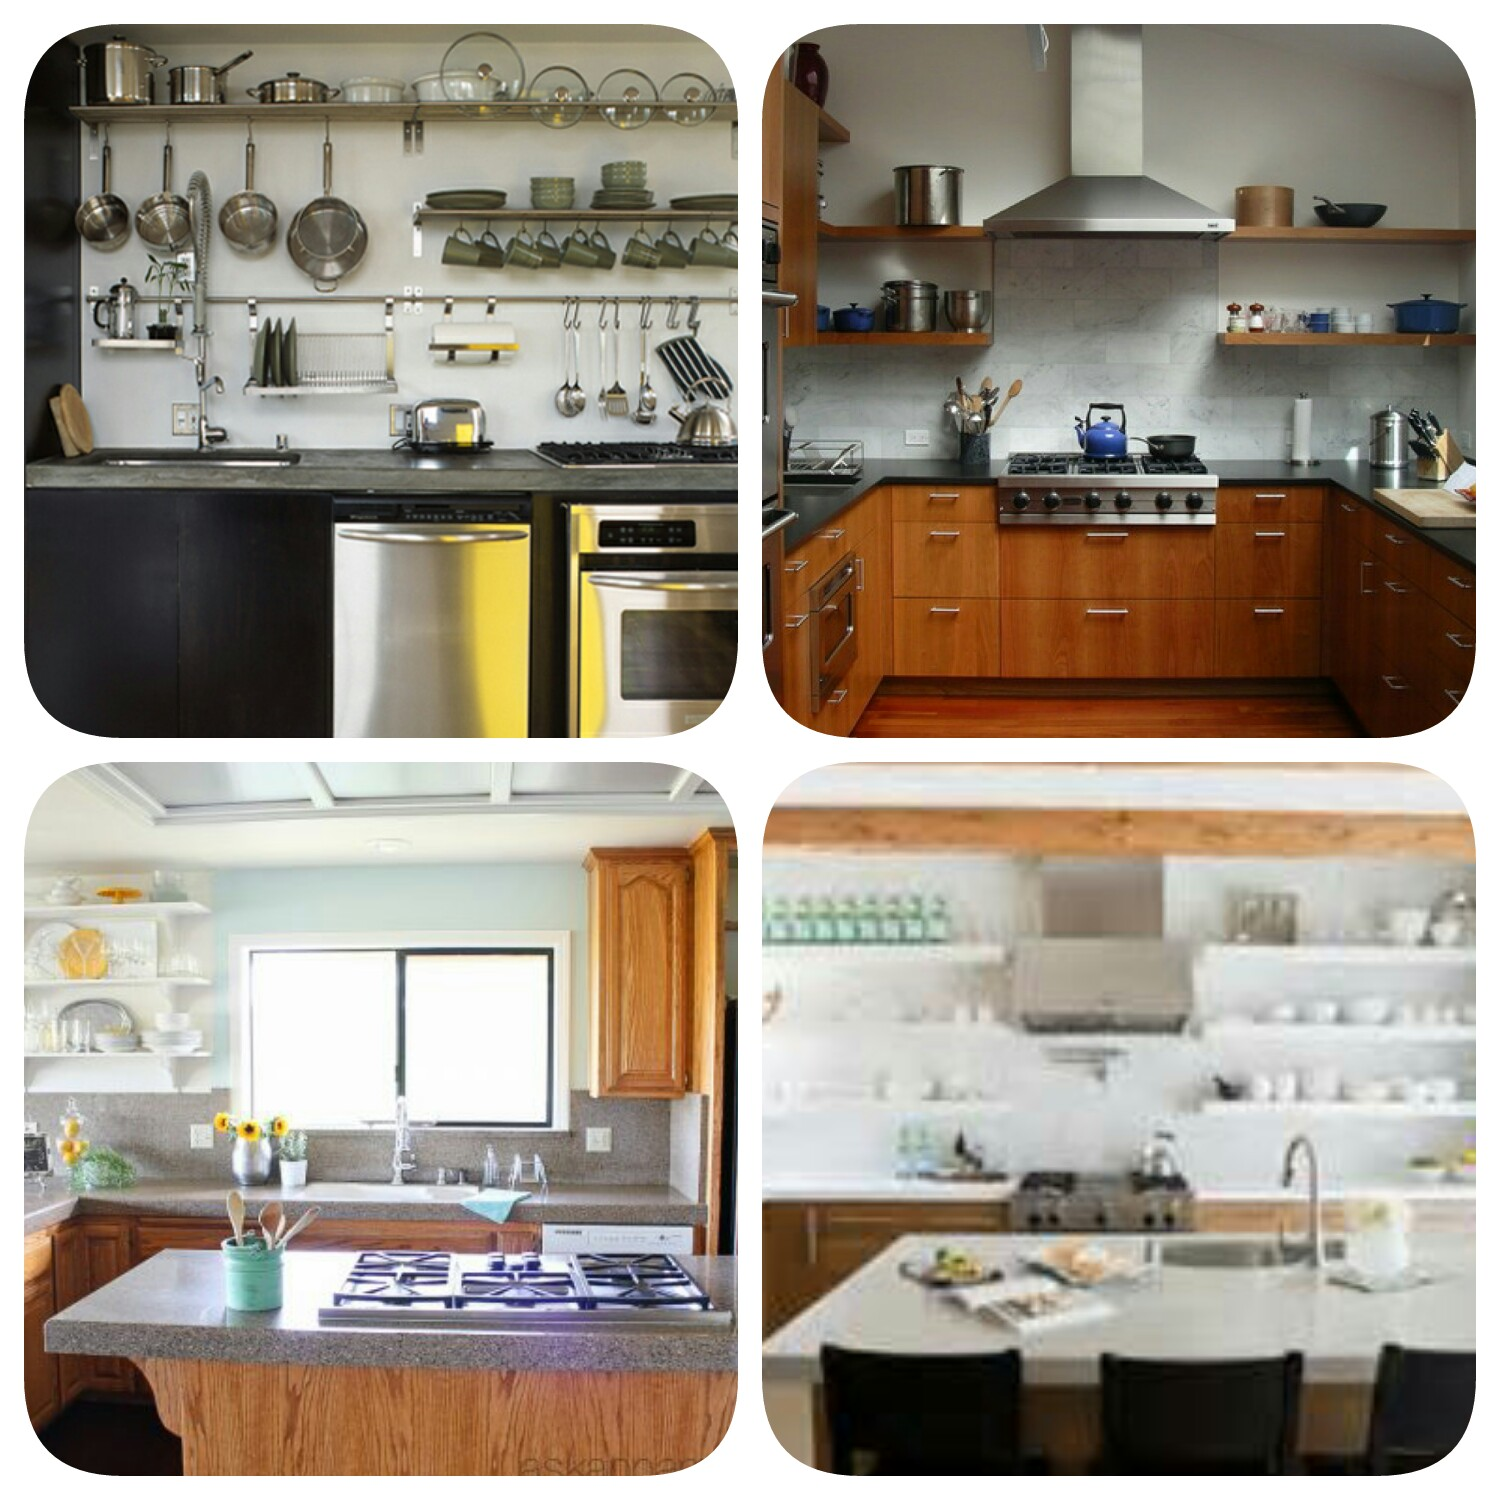 Indian kitchen design blog - Open Shelves Kitchen Ideas